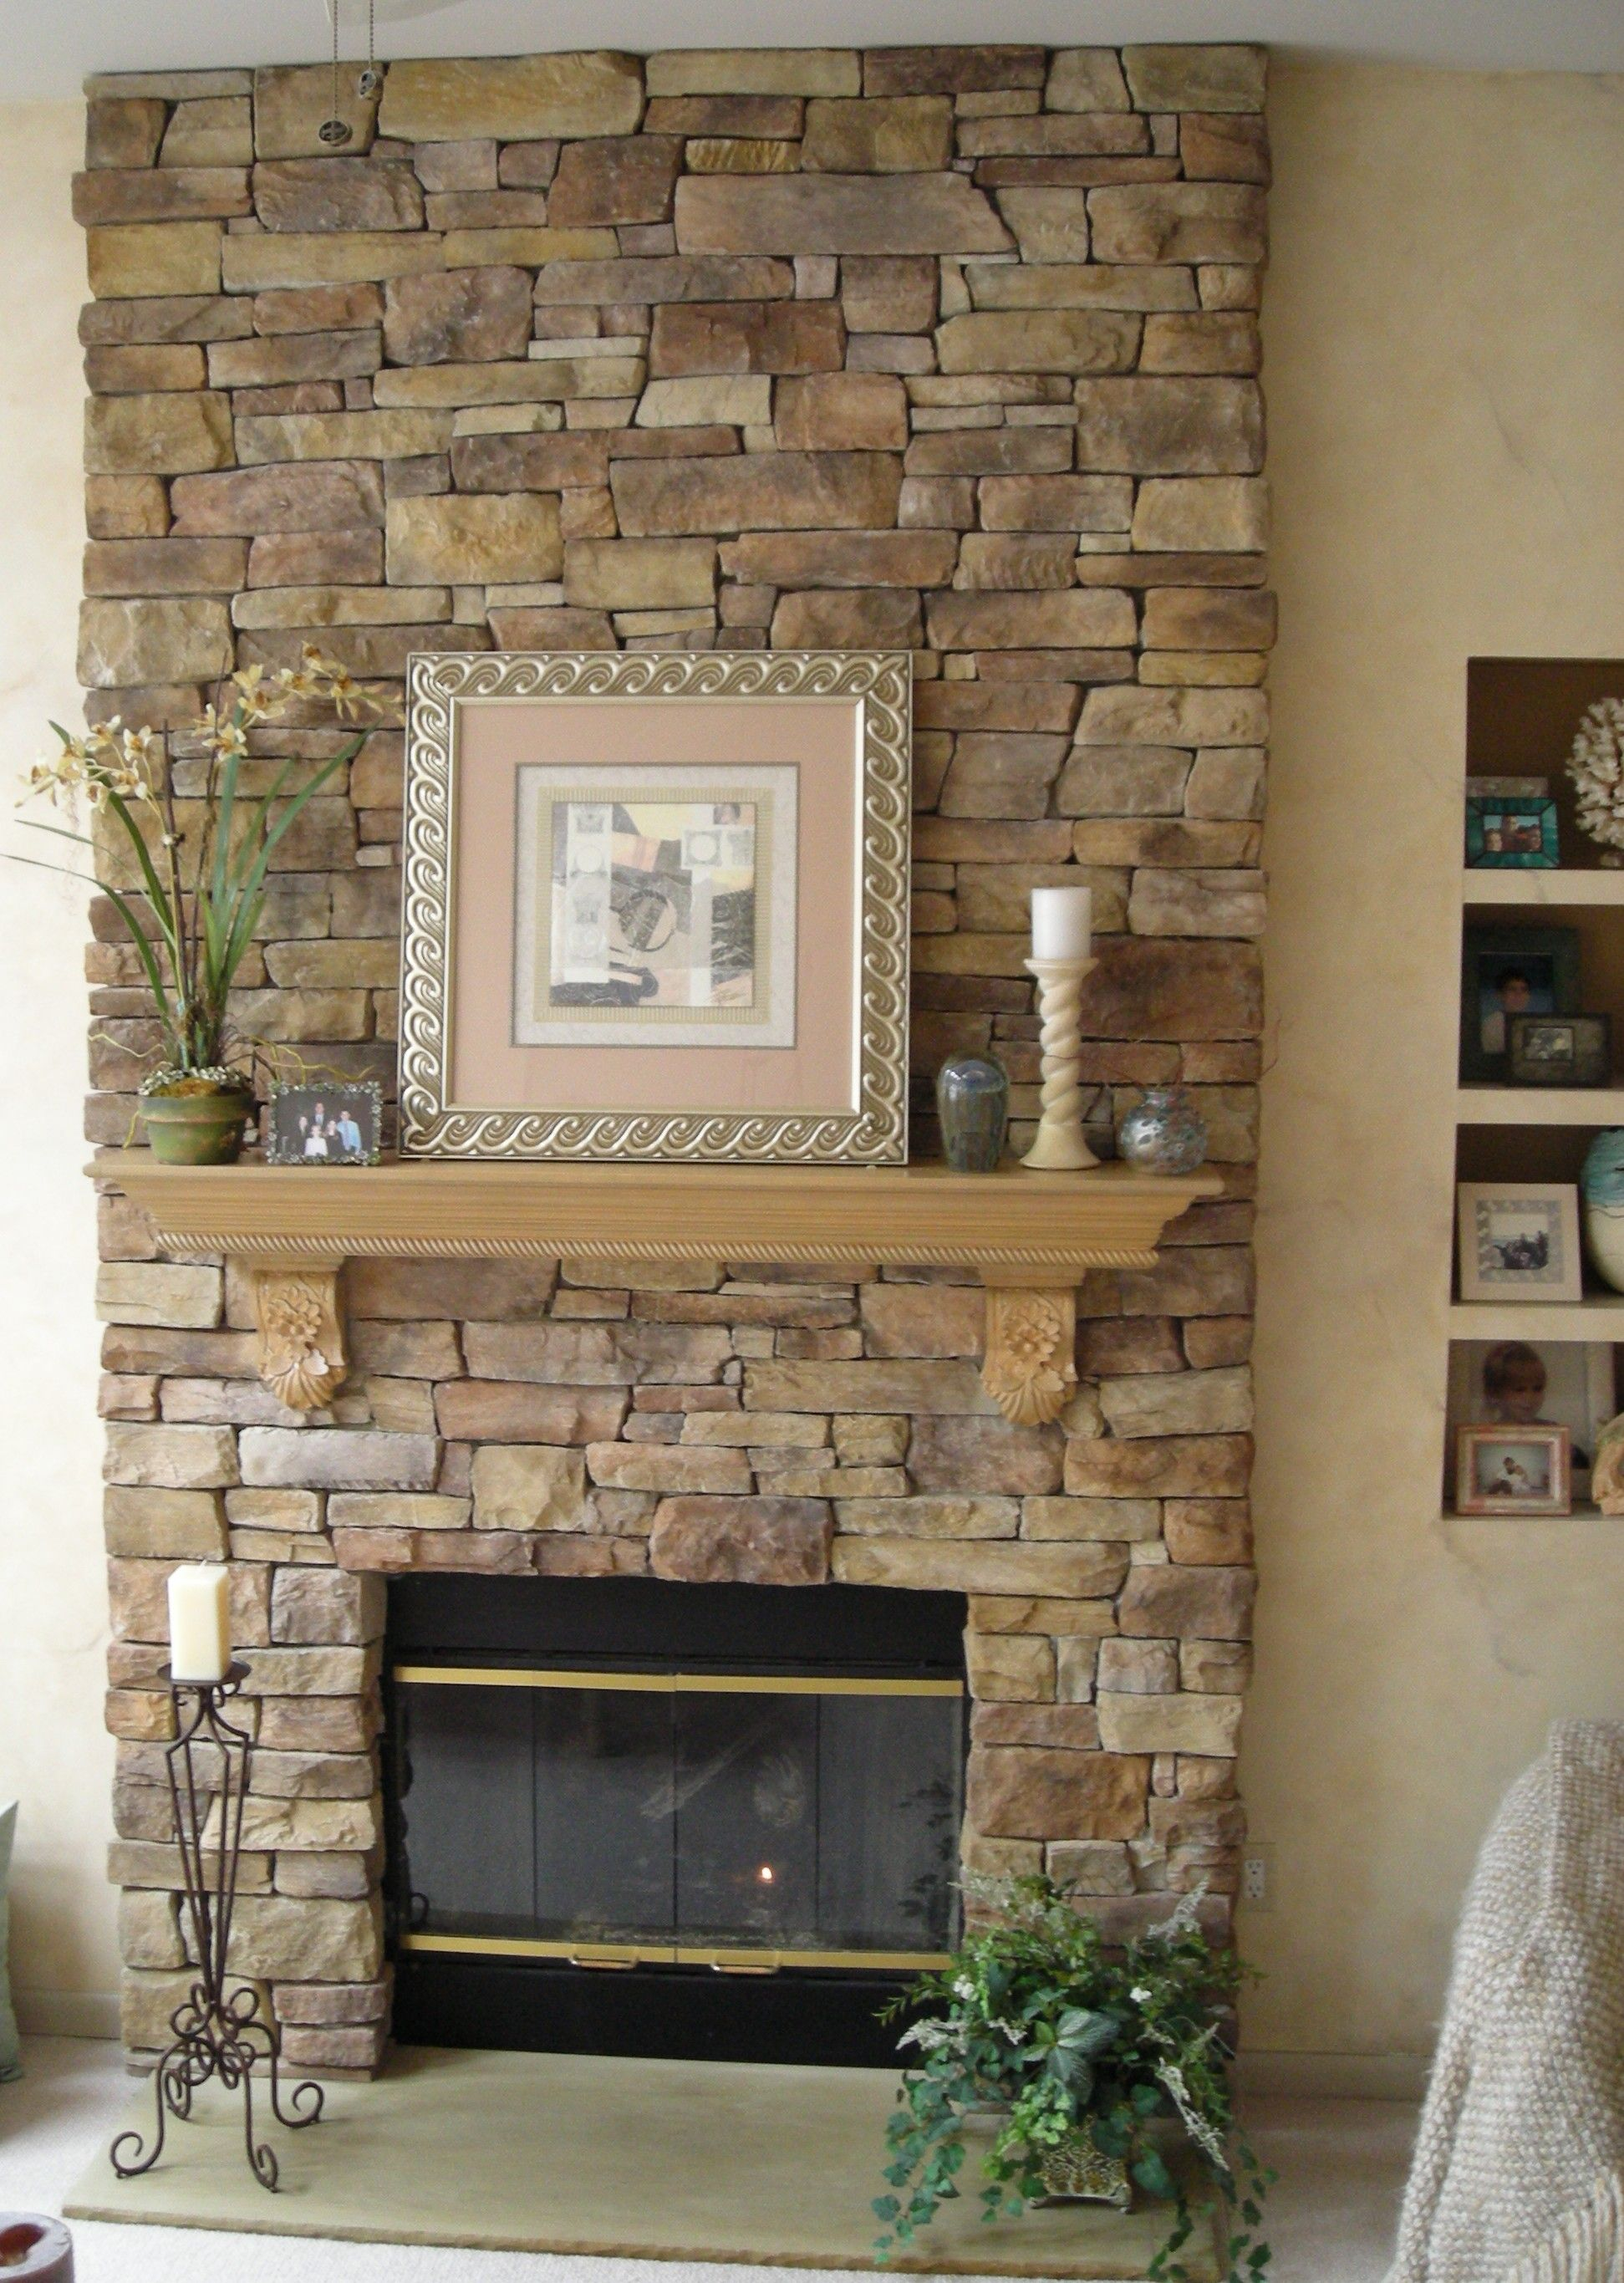 interior stone fireplace specializes in faux stone veneer and natural stone design description from homedesignez - Fireplace With Stone Veneer